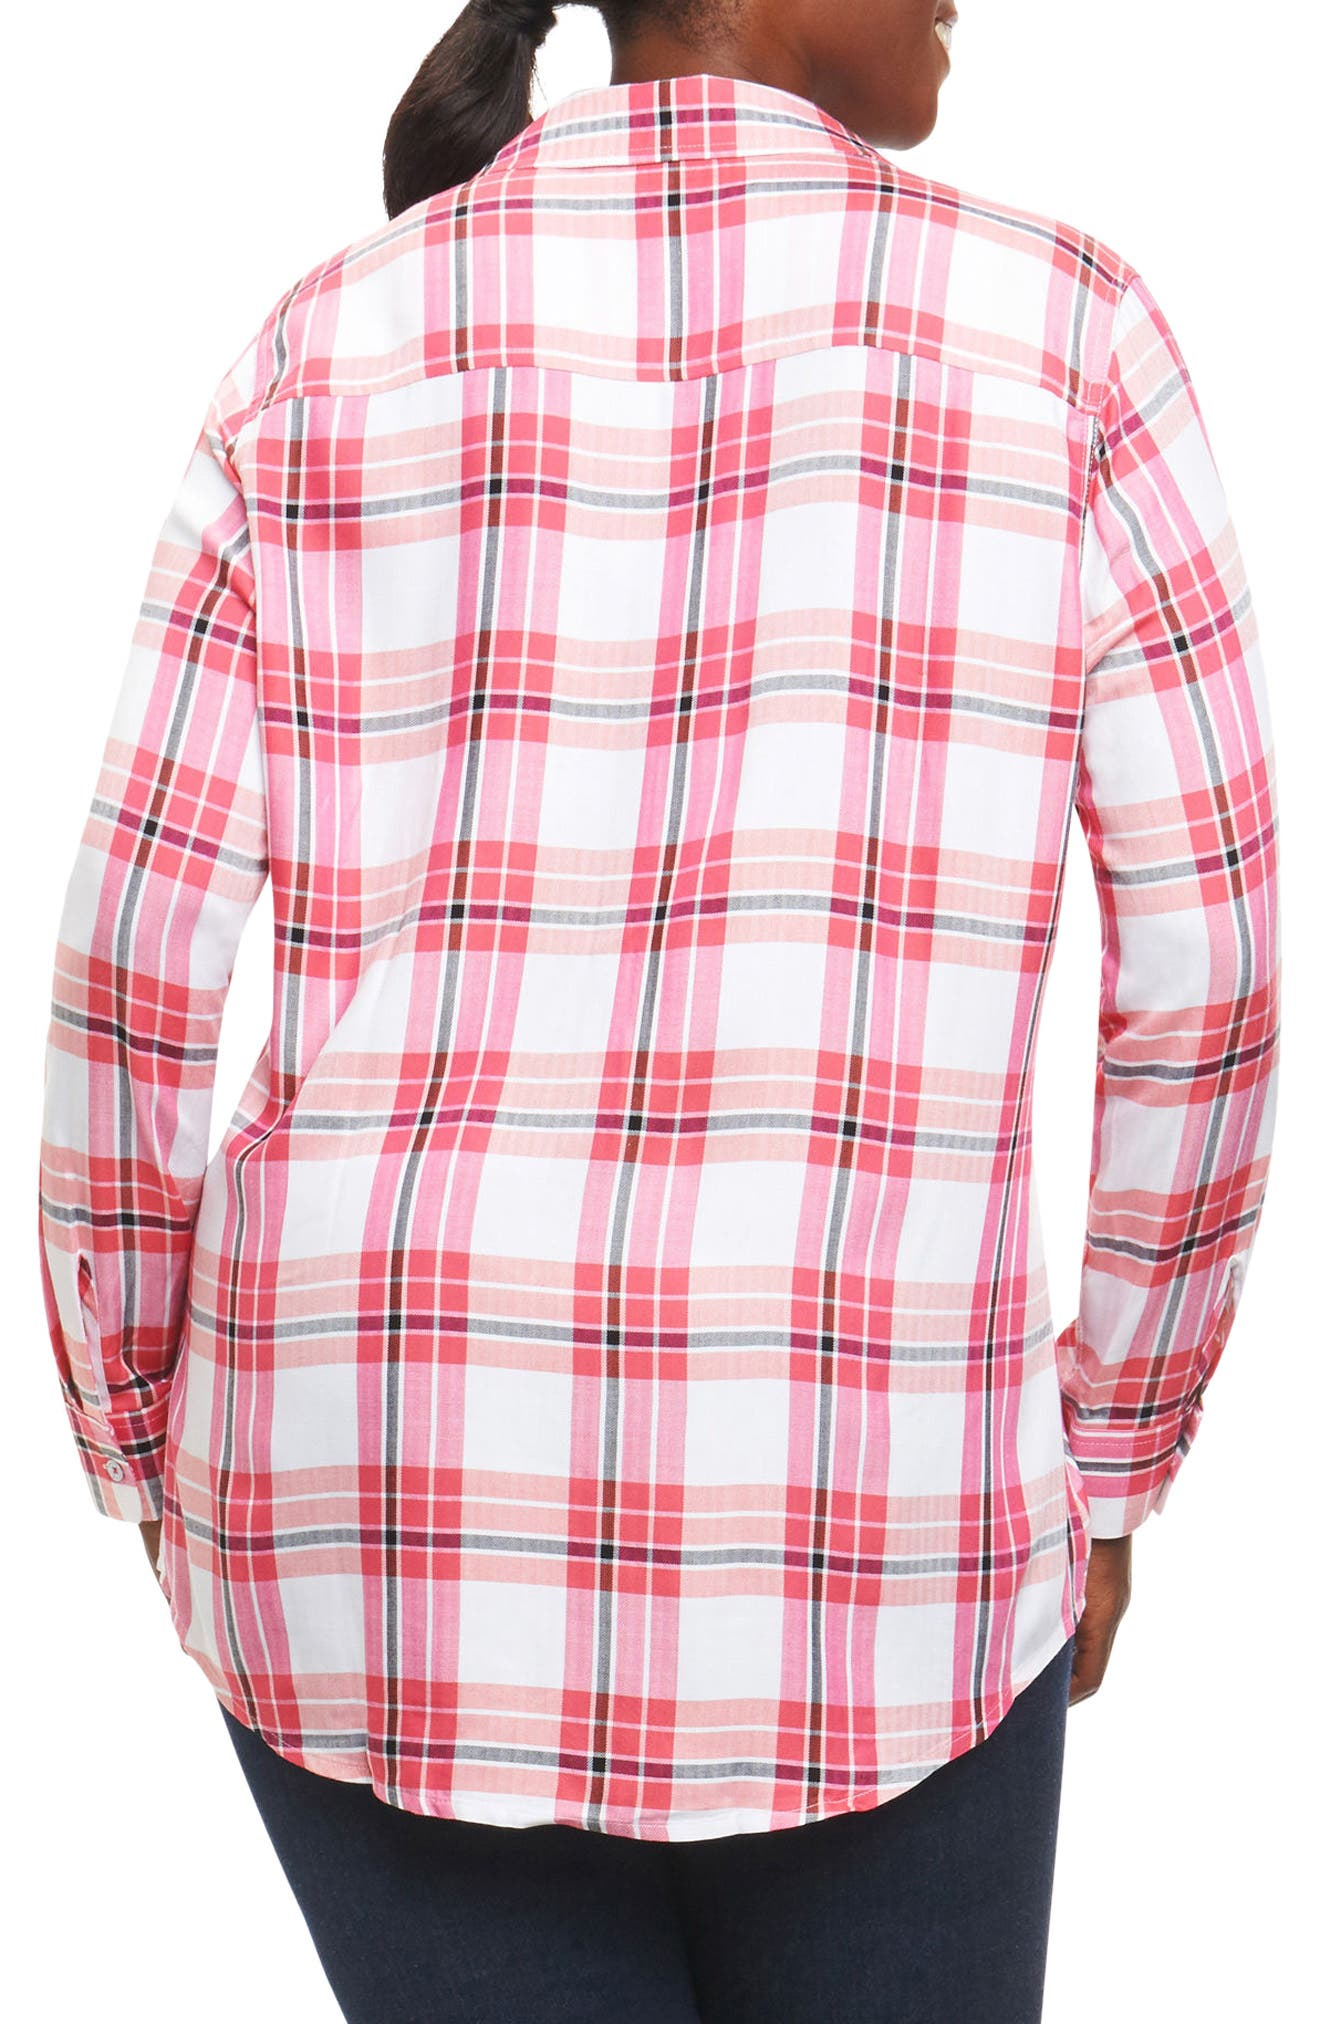 Fay Plaid Shirt,                             Alternate thumbnail 2, color,